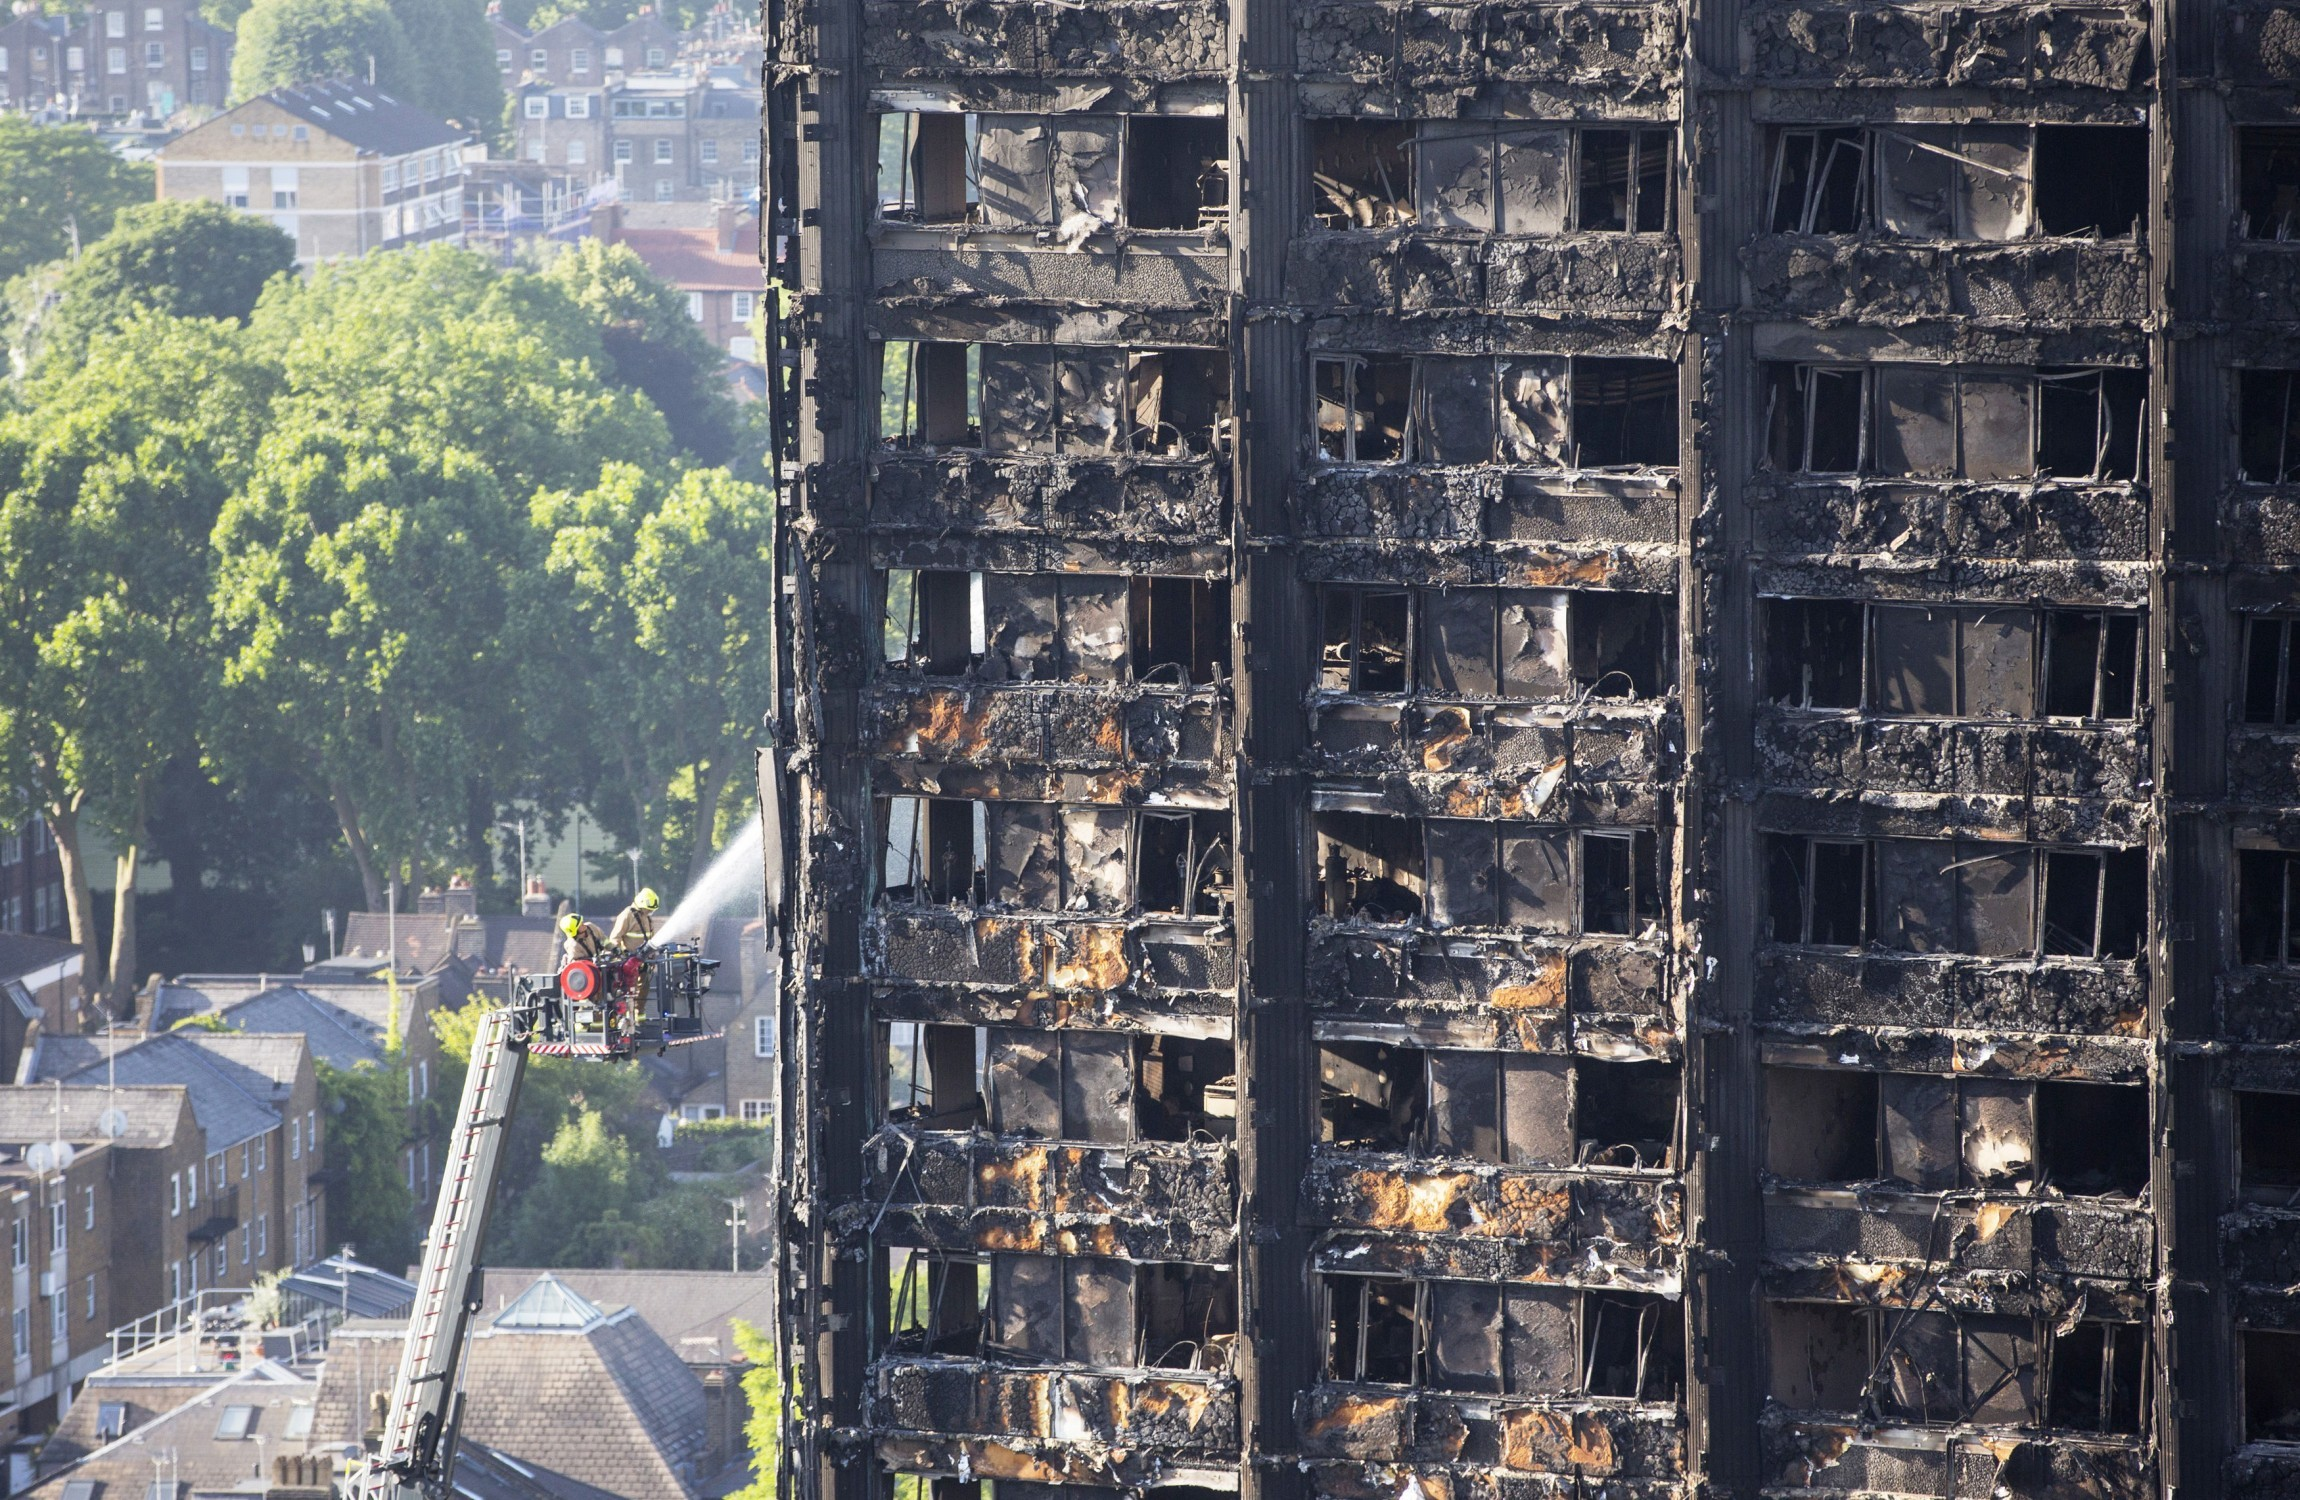 58 people feared dead in London tower fire: United Kingdom police